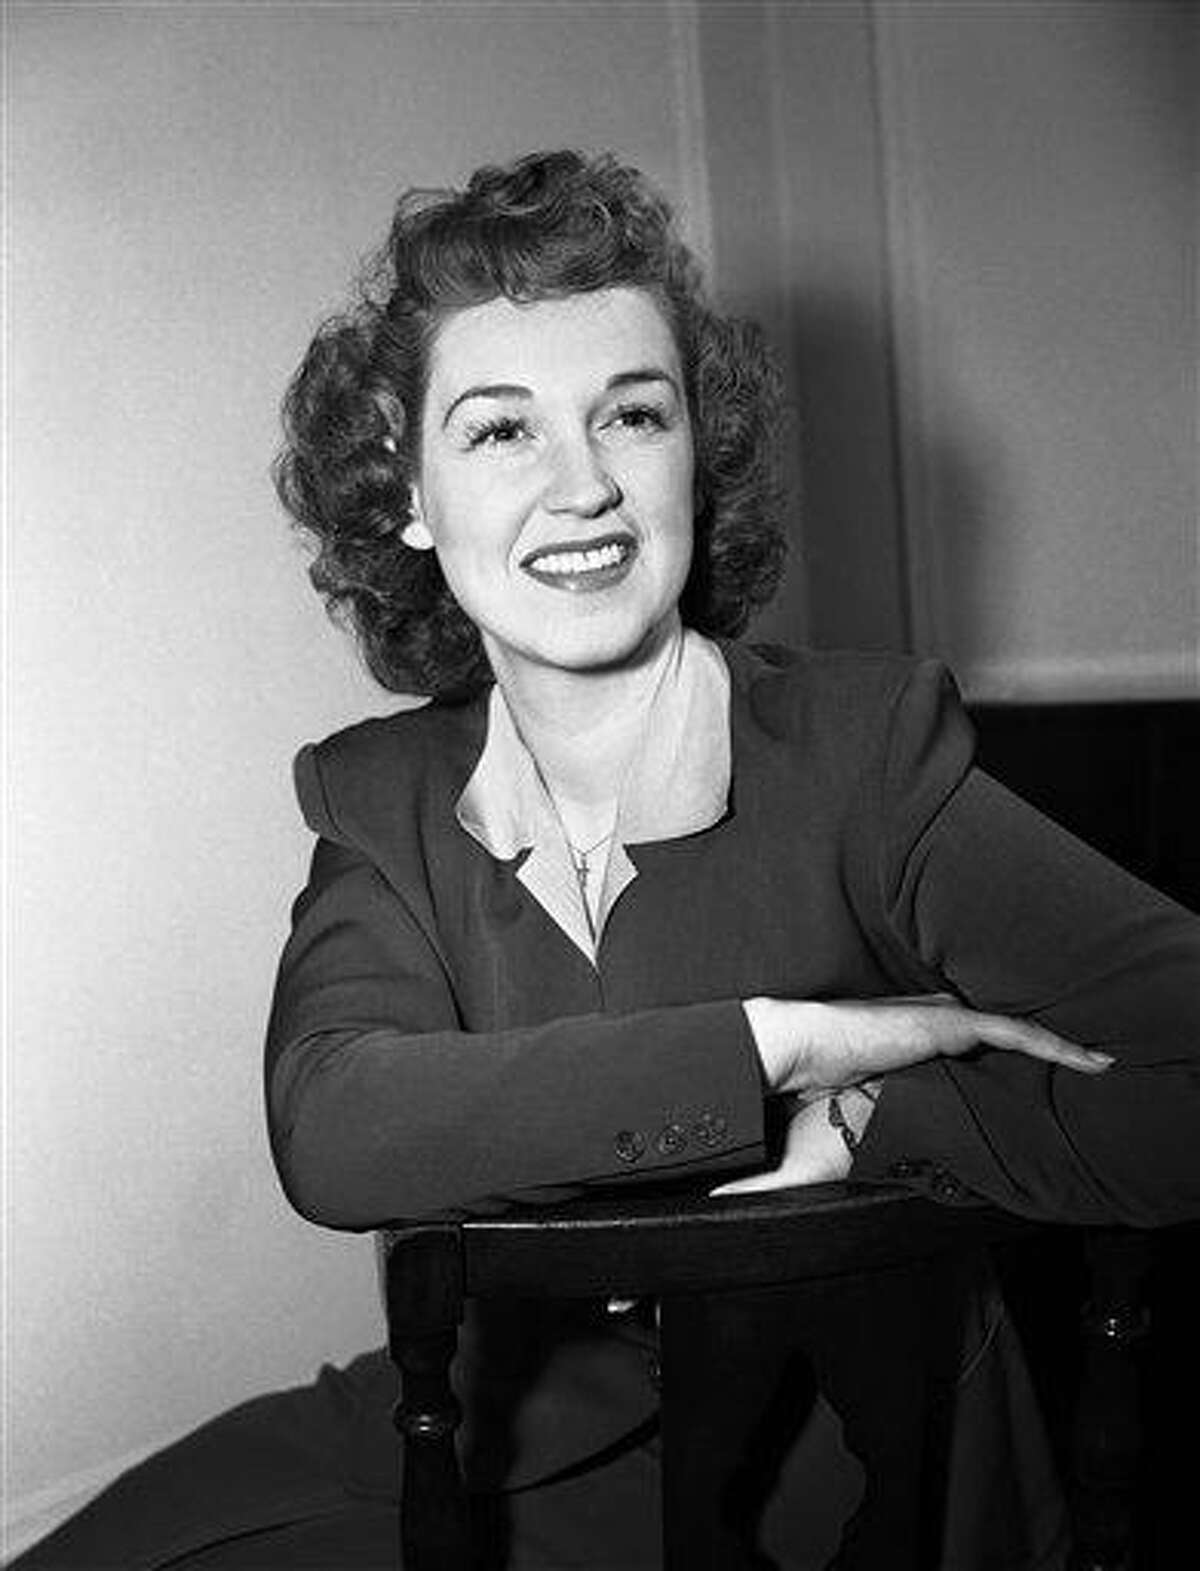 FILE - In this Jan. 11, 1943 file photo, mezzo-soprano Rise Stevens sits for a portrait in New York. Stevens, who sang with the Metropolitan Opera for more than 20 years spanning the 1940s and 1950s, died on Wednesday, March 20, 2013 at her Manhattan home. She was 99. (AP Photo, File)